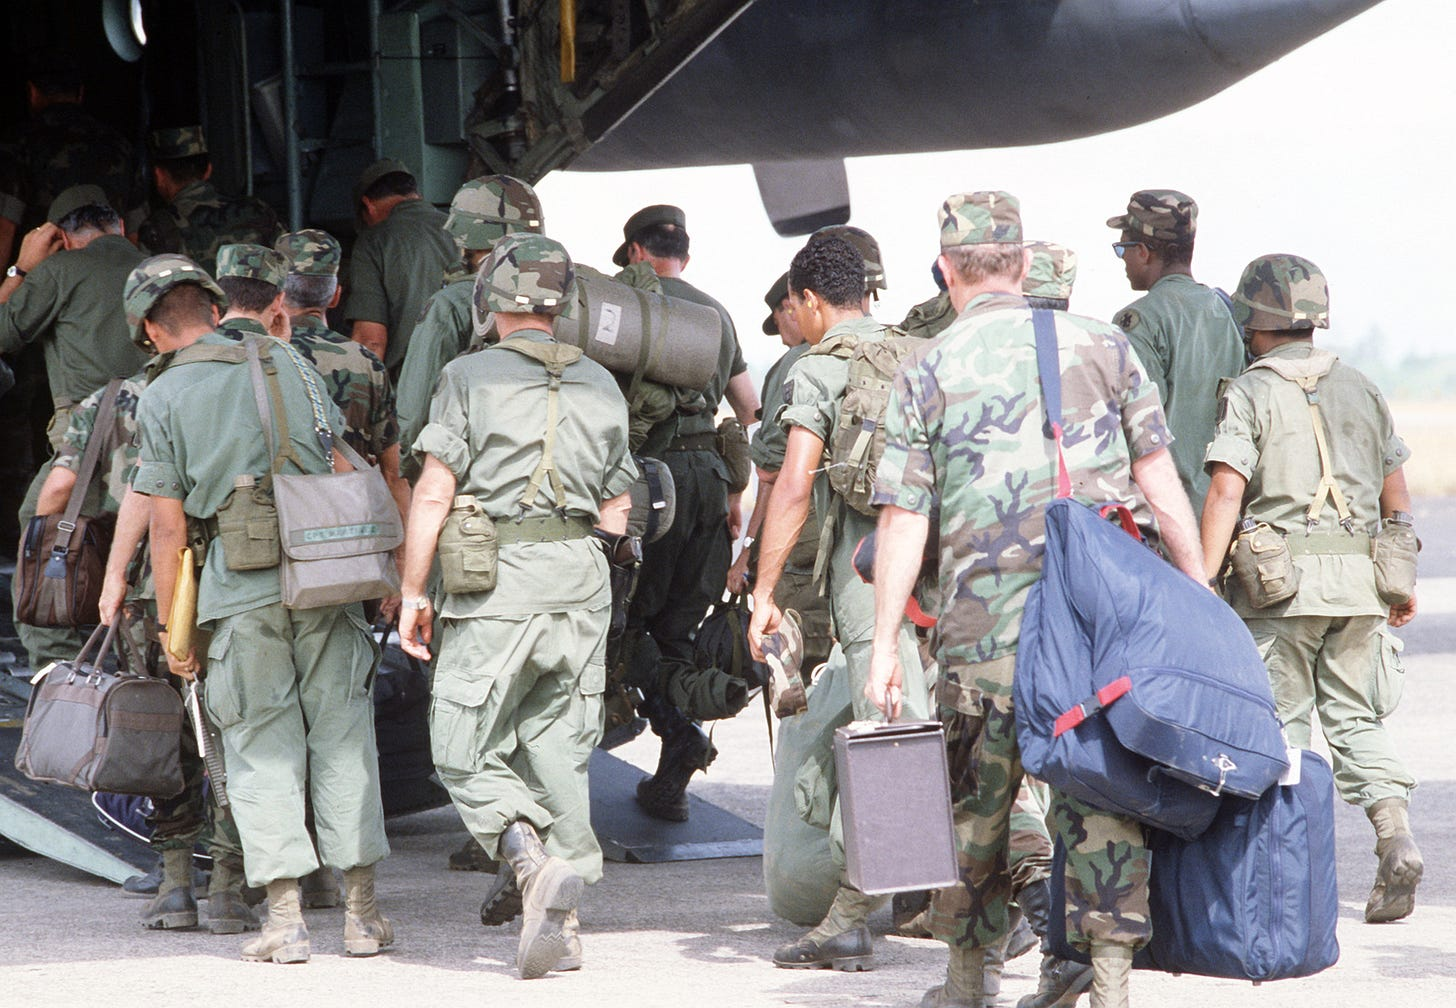 Panamanian and US troops board a cargo plane for transport back to Howard  Air Force Base, Panama, at the conclusion of Exercise KINDLE LIBERTY - U.S.  National Archives Public Domain Image